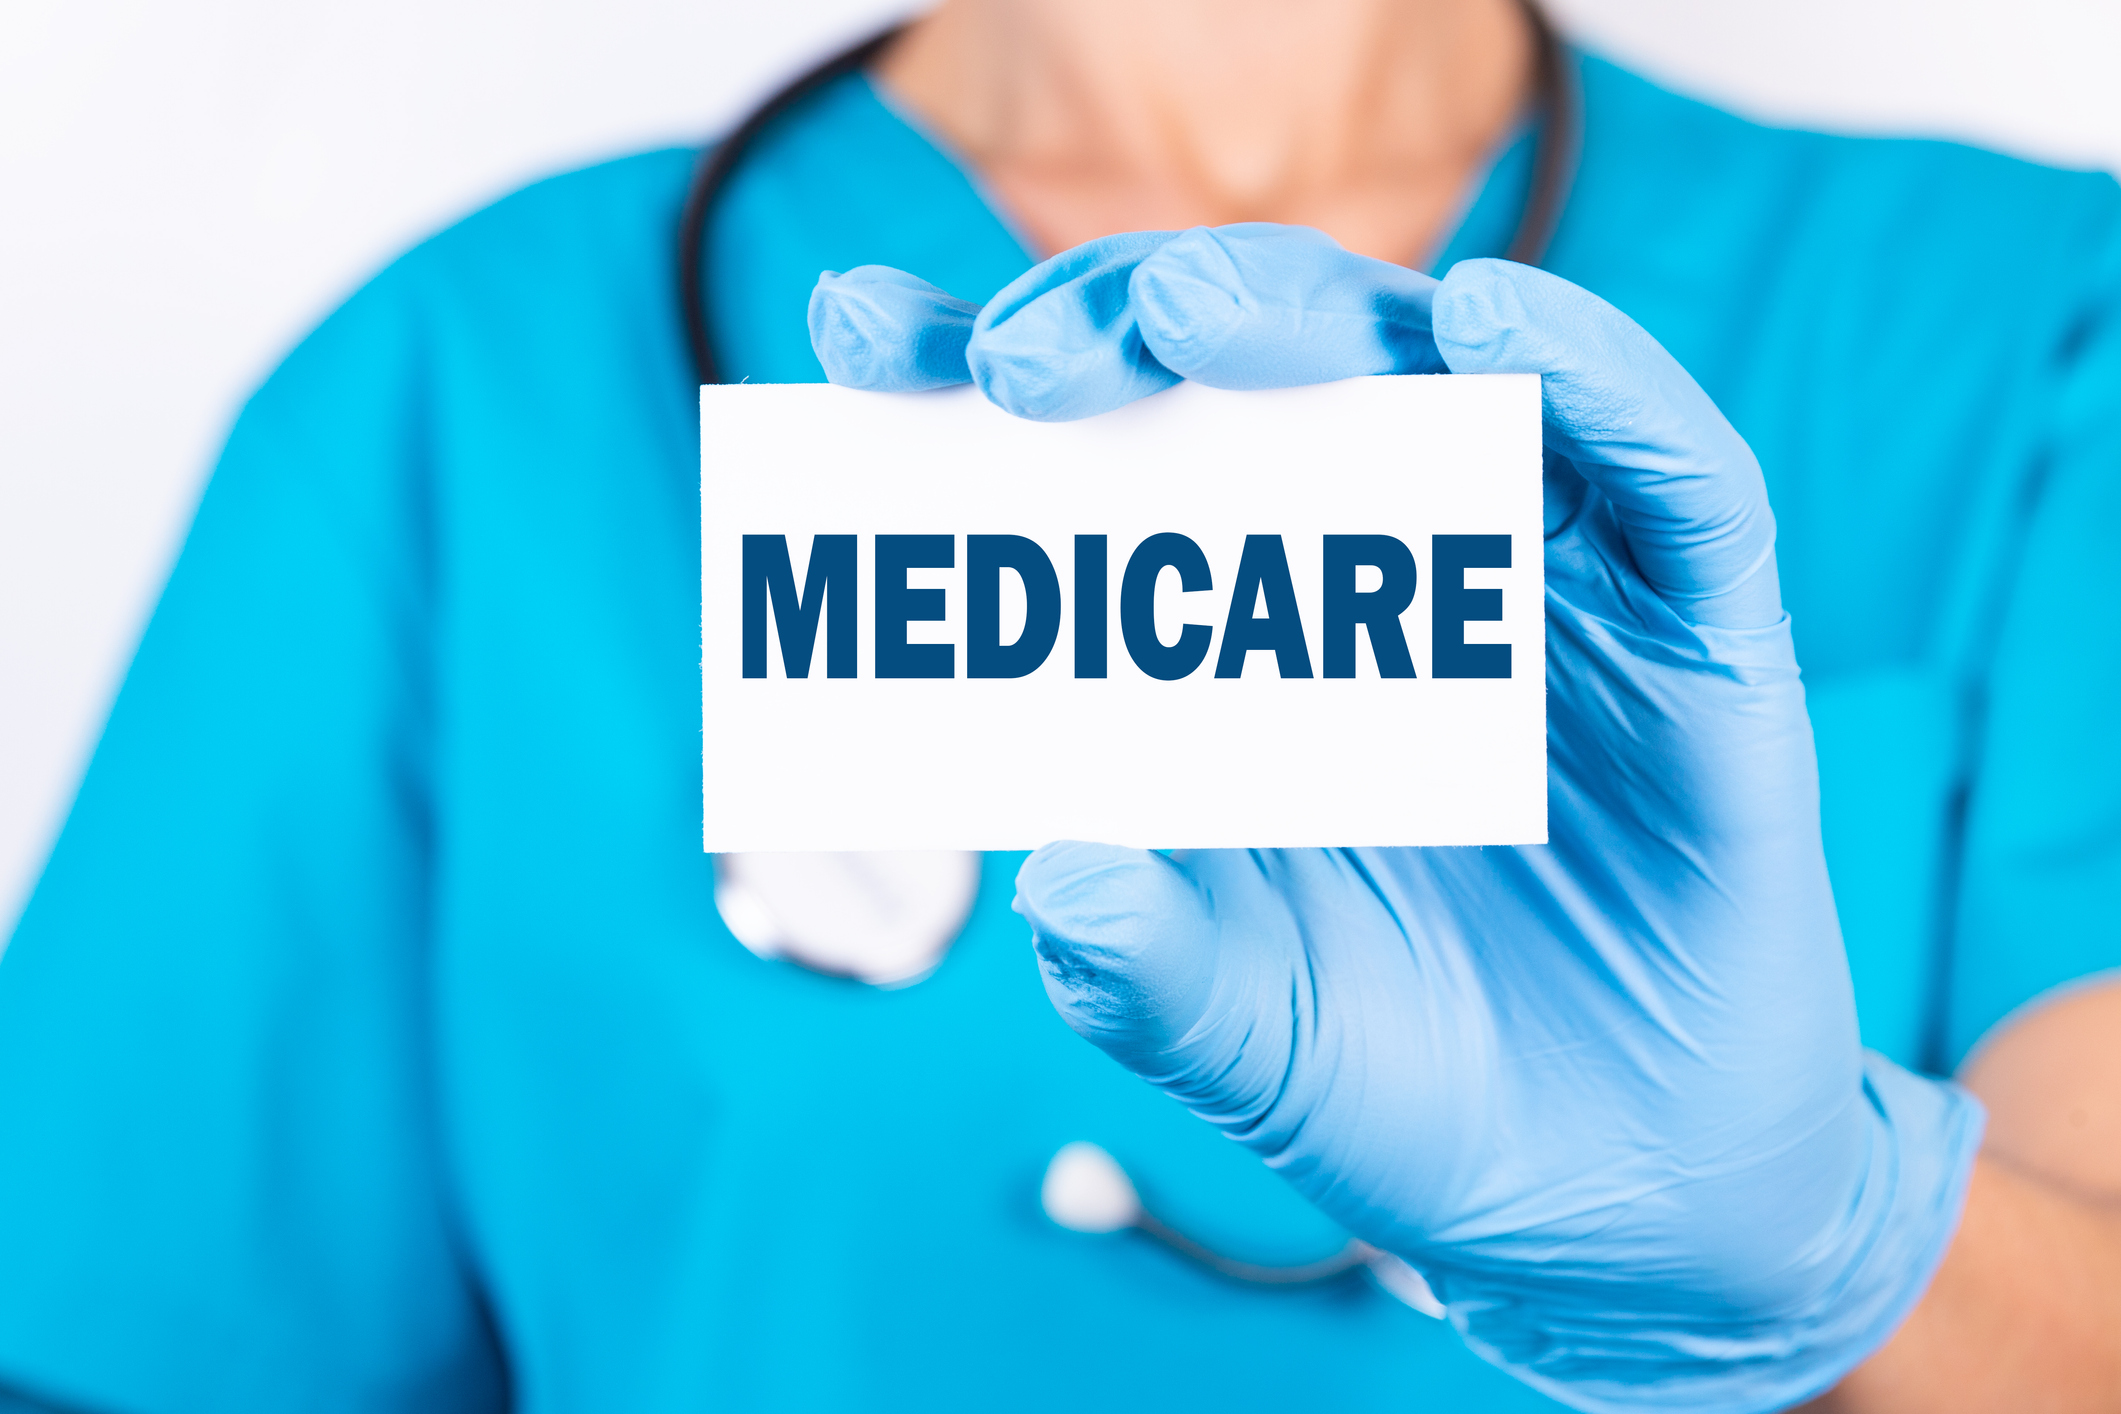 Why Medicare Should Be Part of Your Retirement Strategy